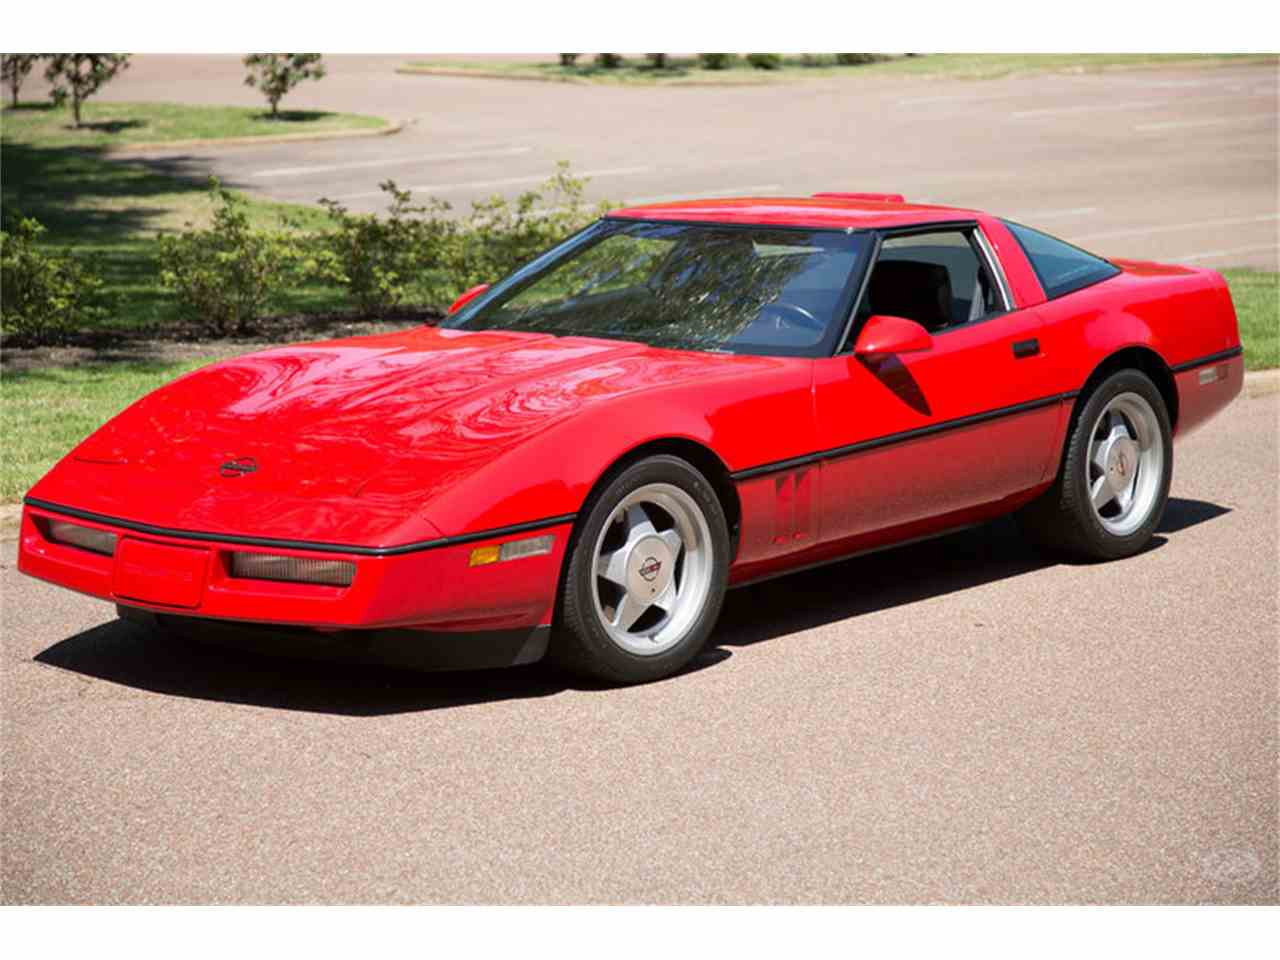 Large Picture of 1990 Chevrolet Corvette located in Tennessee - $45,900.00 - LTRY